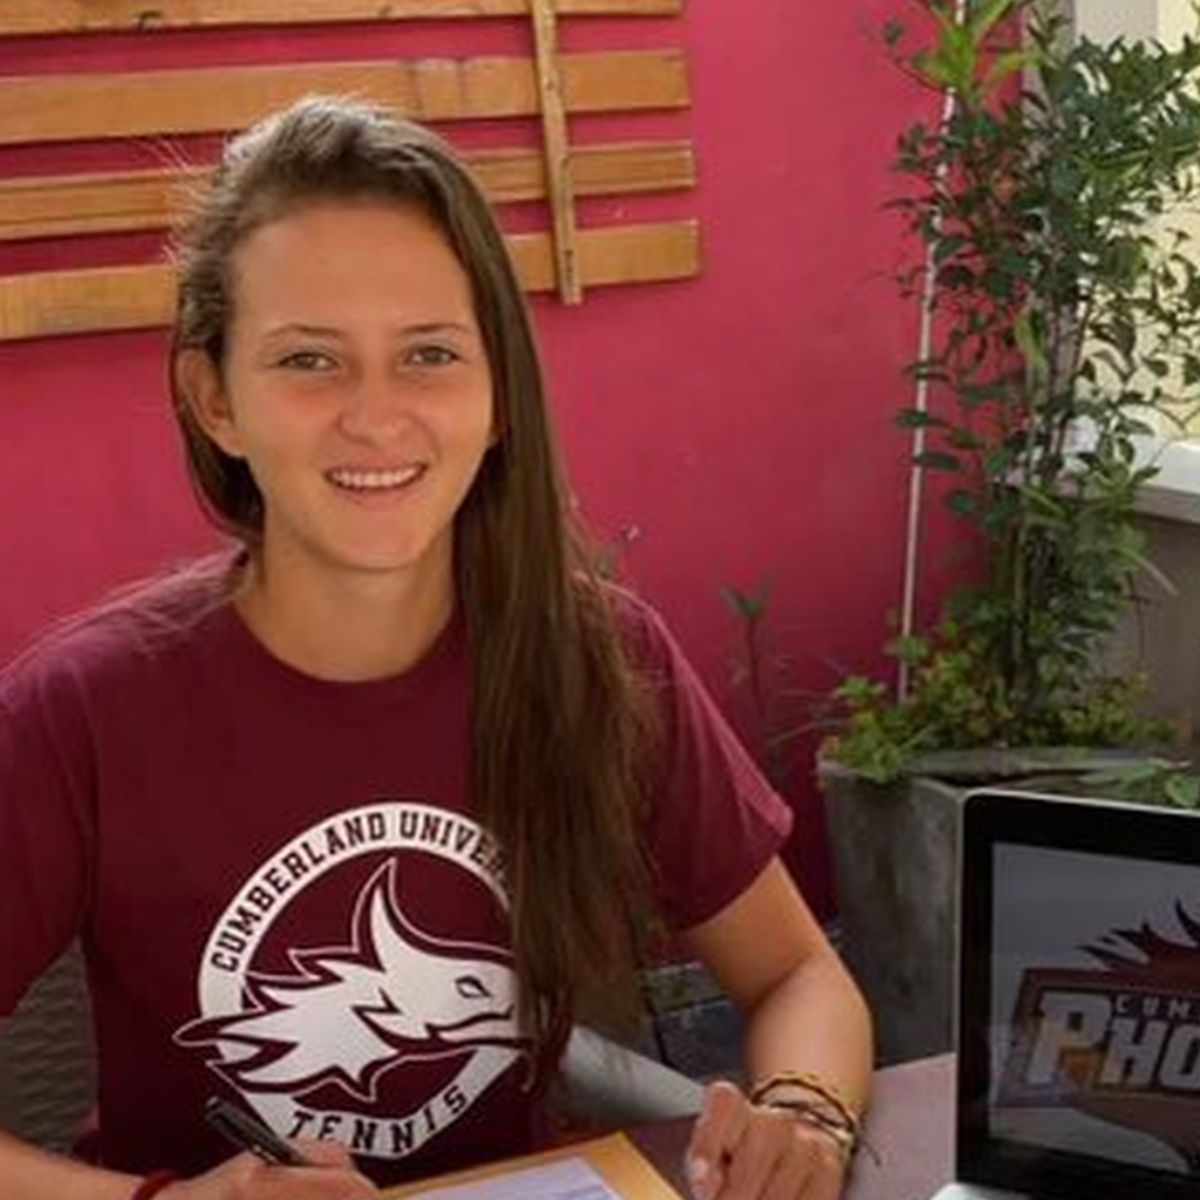 Colombia native signs with Women's Tennis